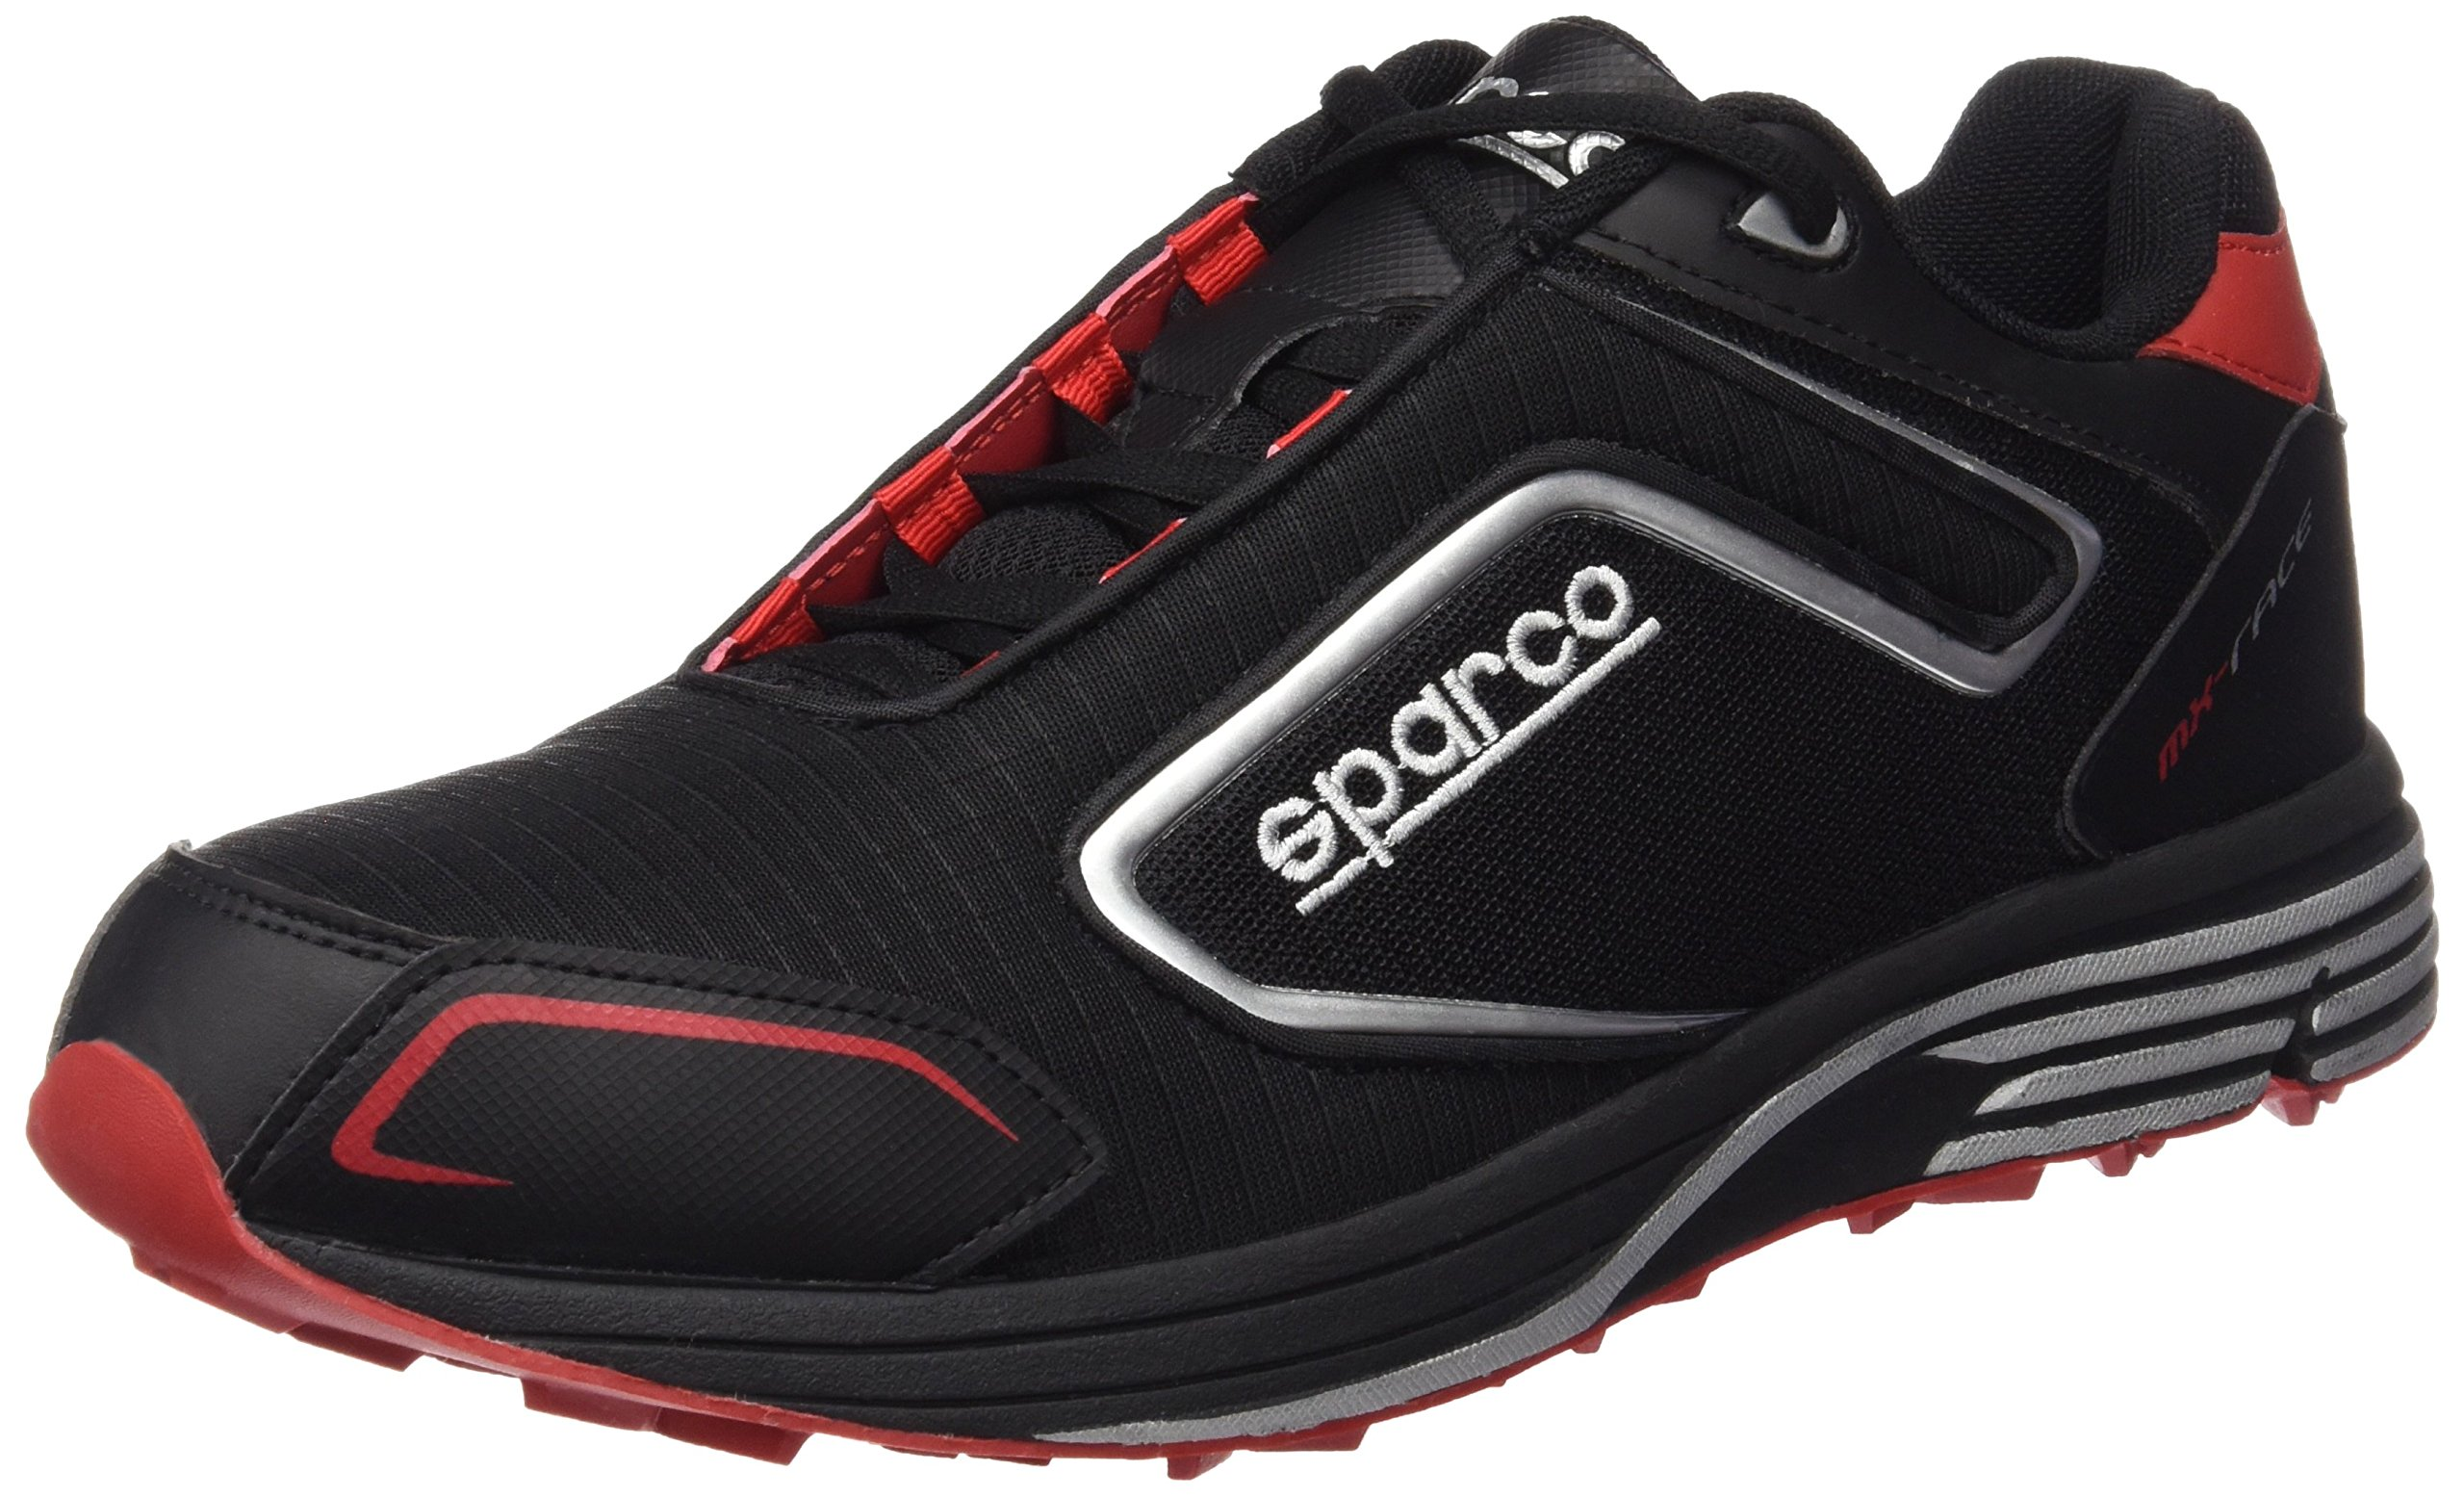 Sparco MX Race Shoes 01216 (Size 46, Black/Red)